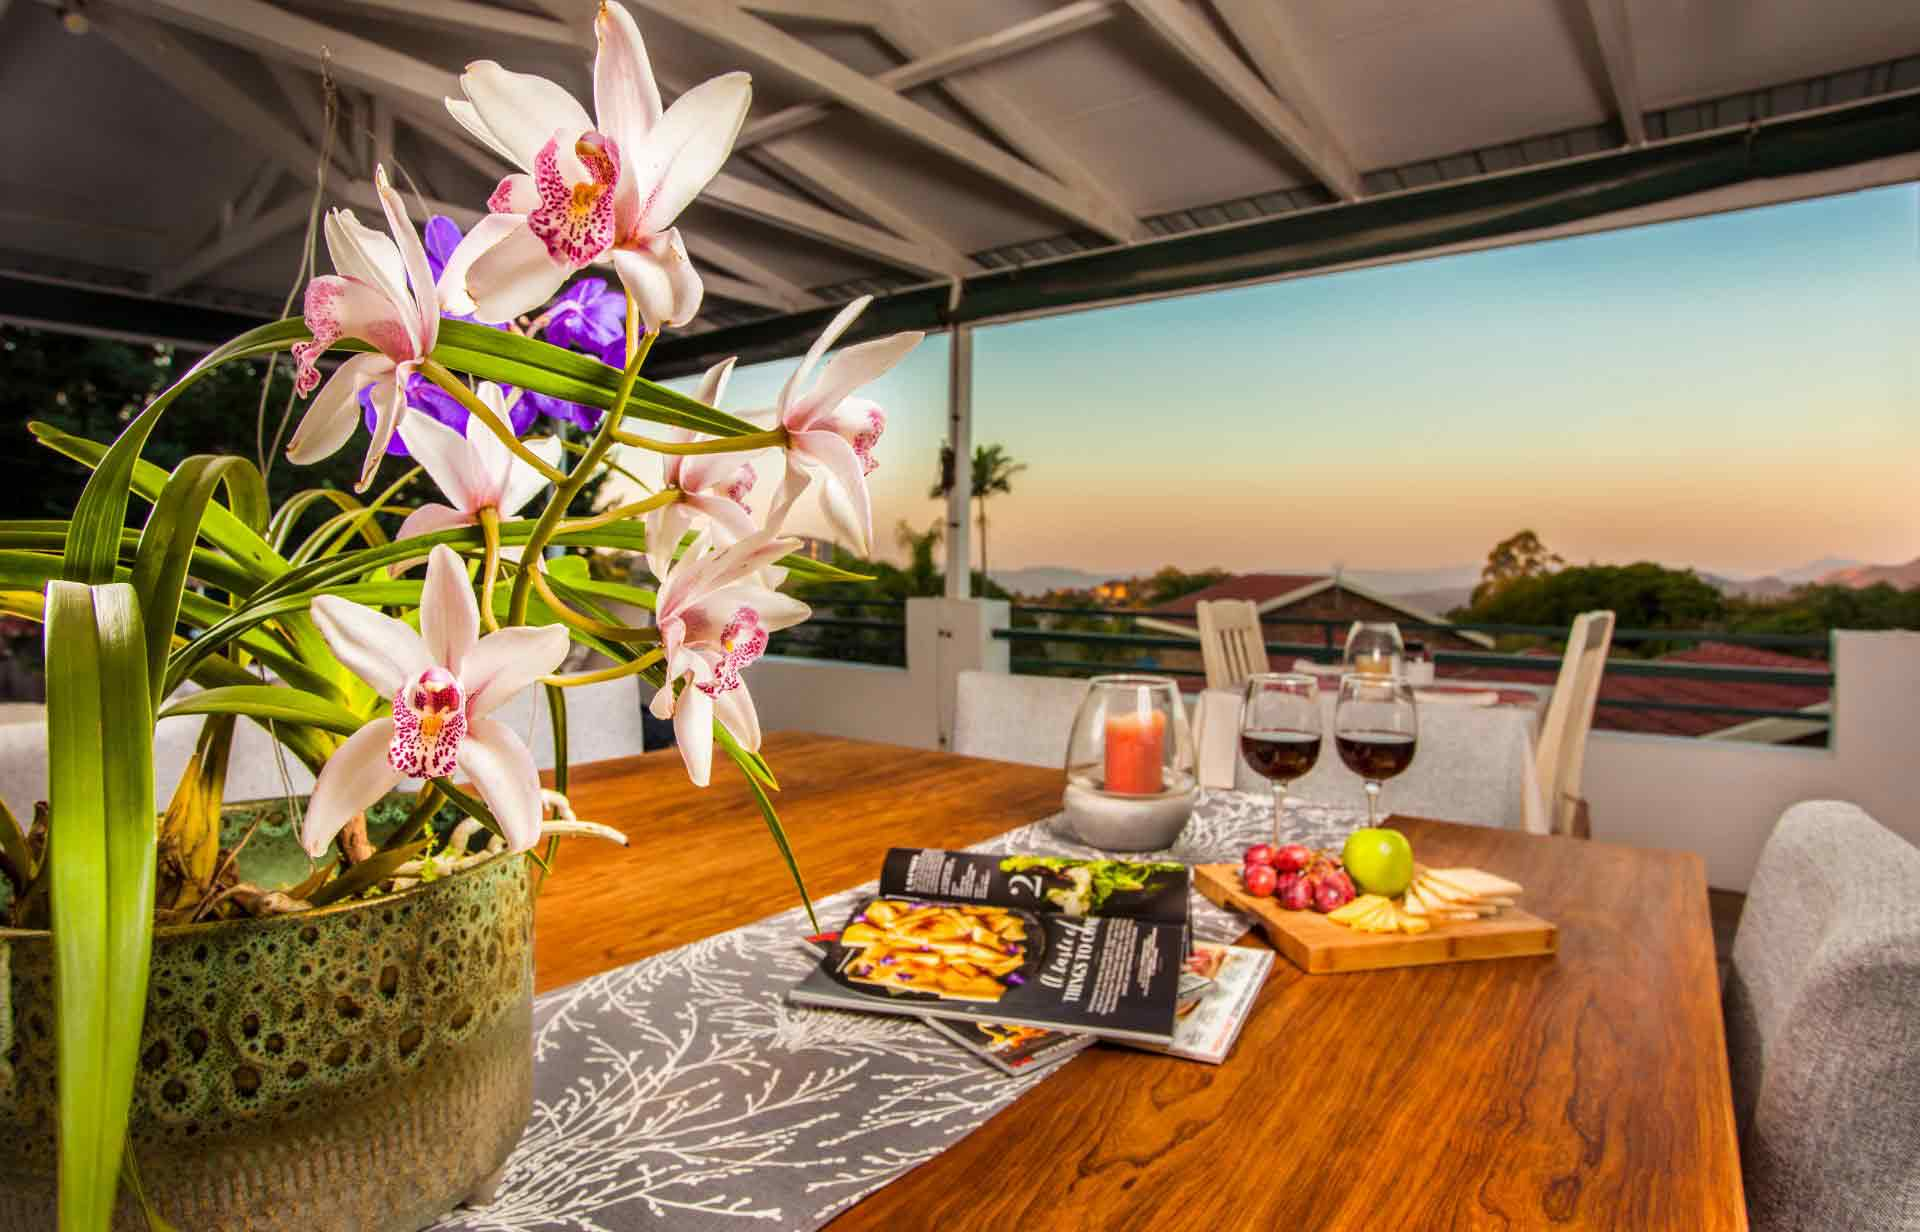 A flower with a stunning view of Nelspruit in the background - Guest Houses Nelspruit - Shandon Lodge